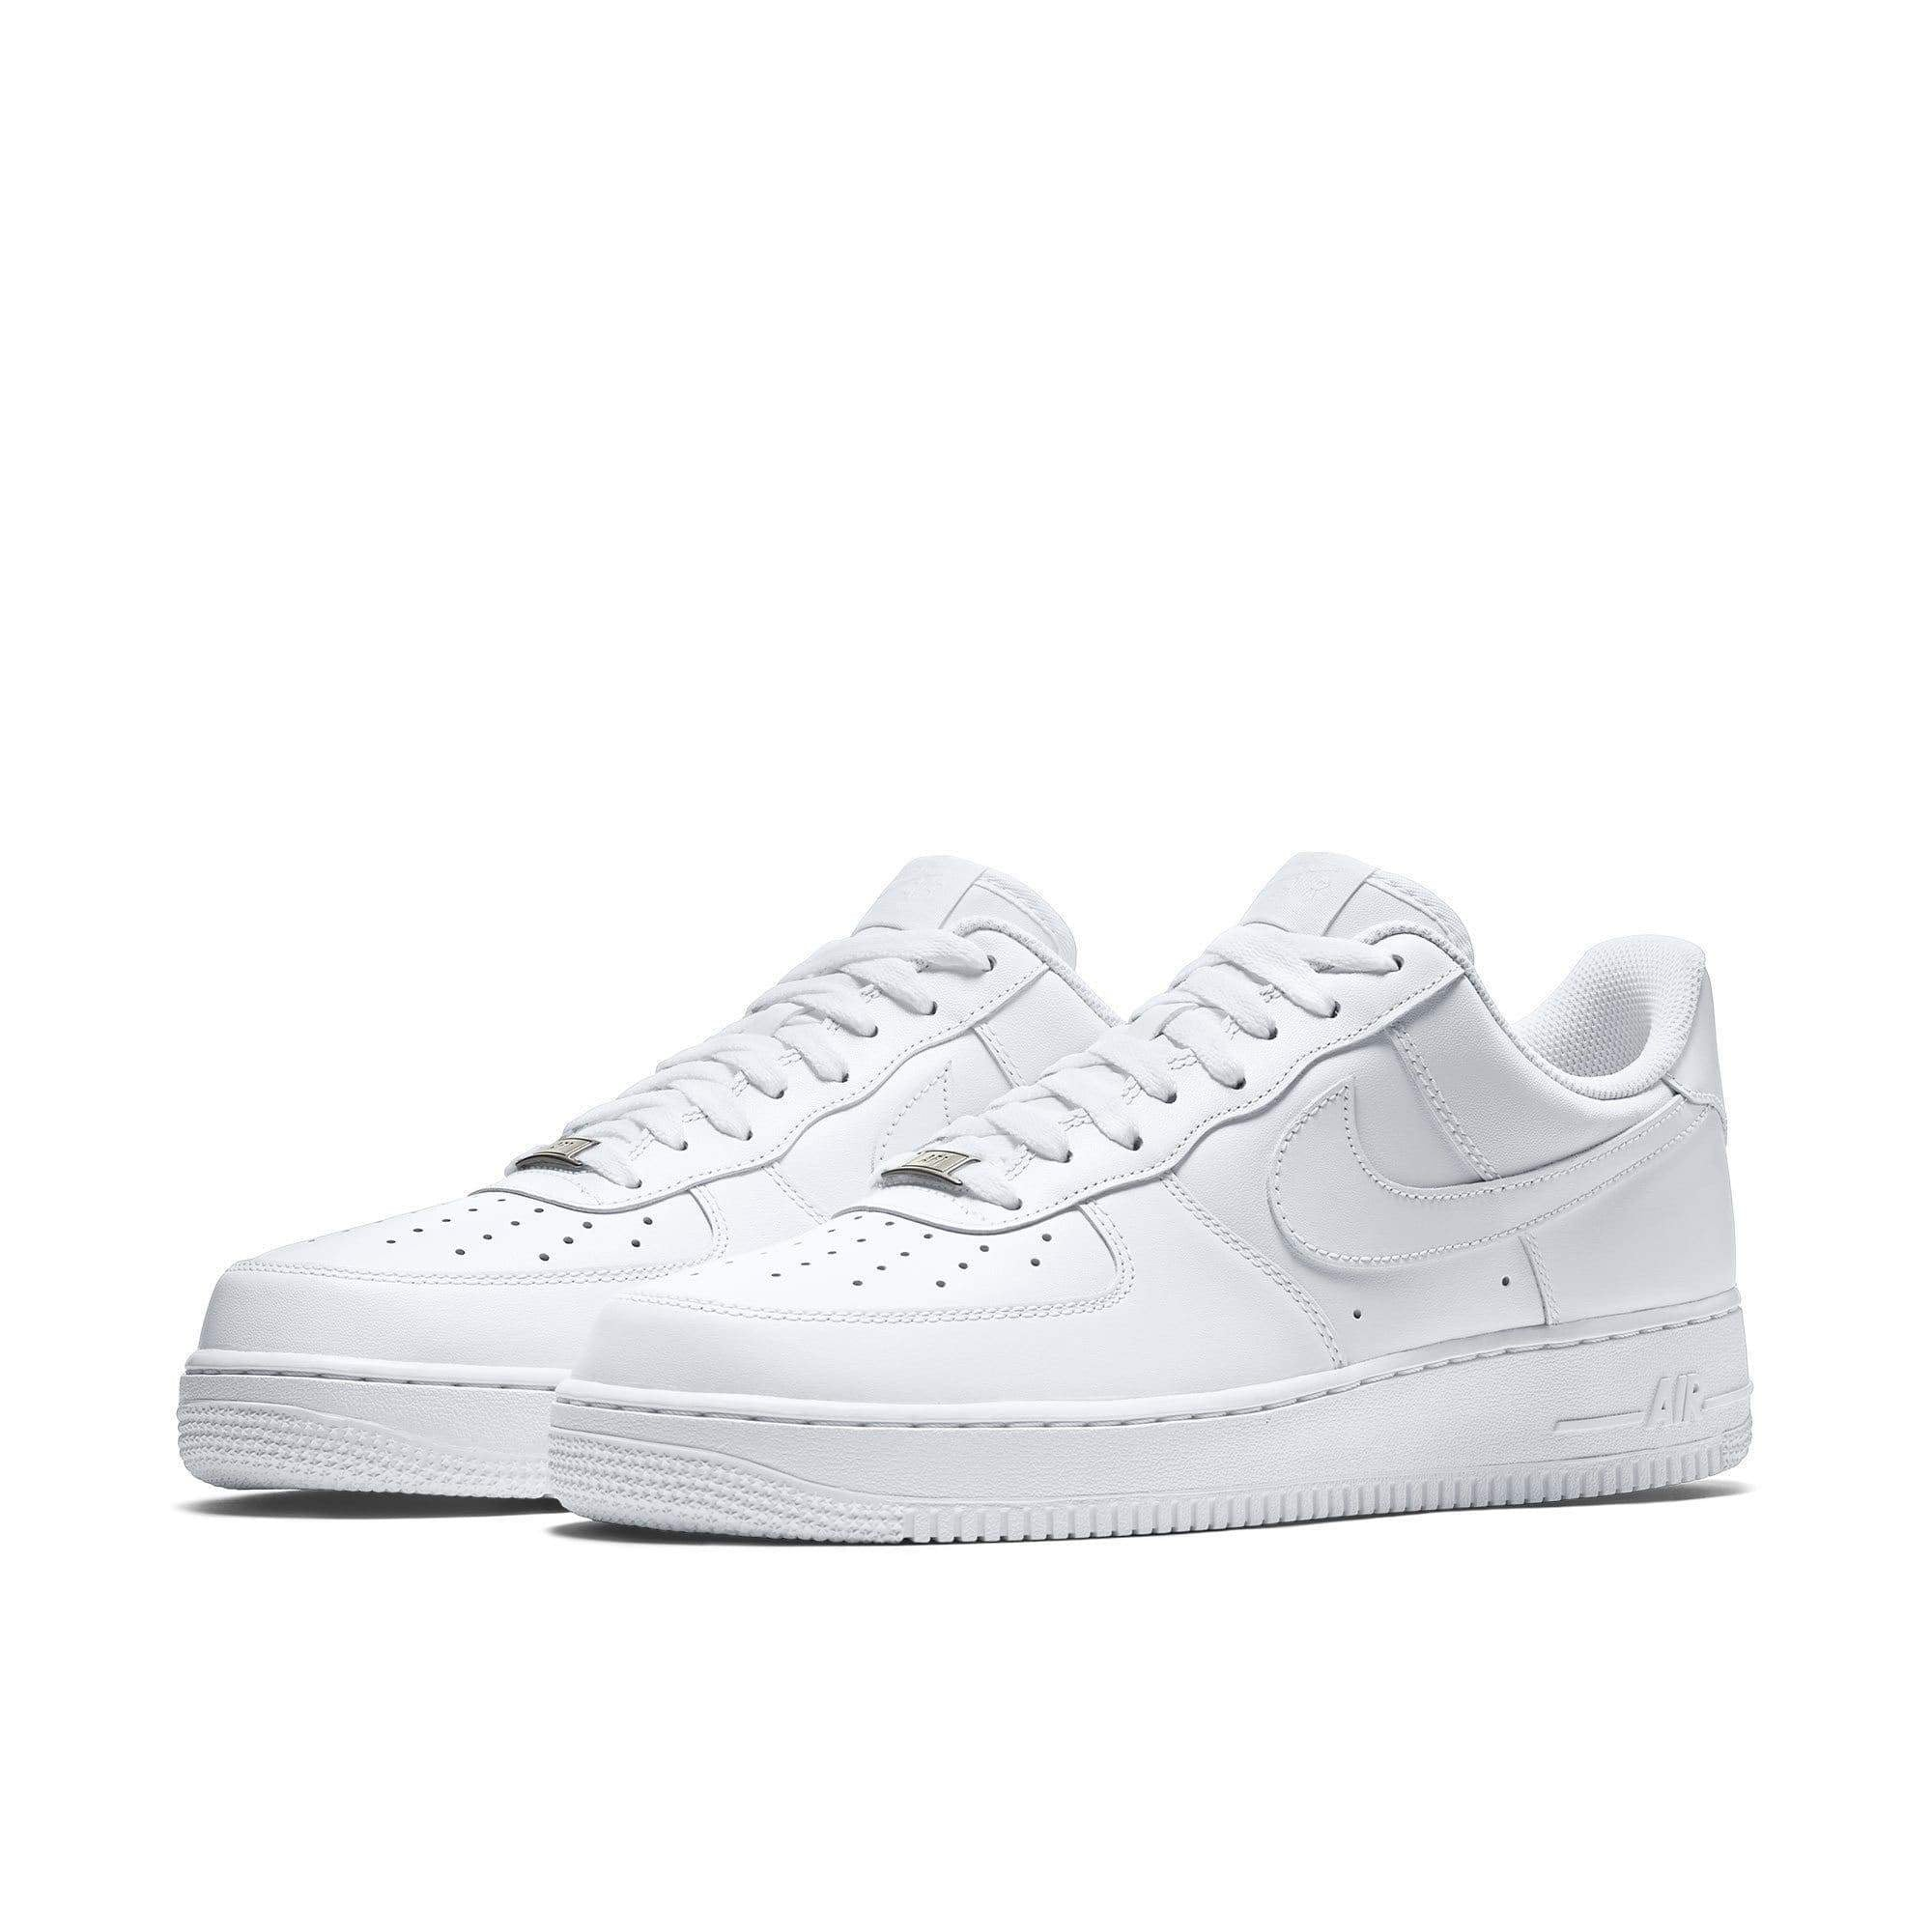 Italians Made Nike Air Force 1 '07 New Arrival Men Skateboarding Shoes Anti-Slippery Sports Shoes Hard-Wearing Outdoor Men Sneakers #315122